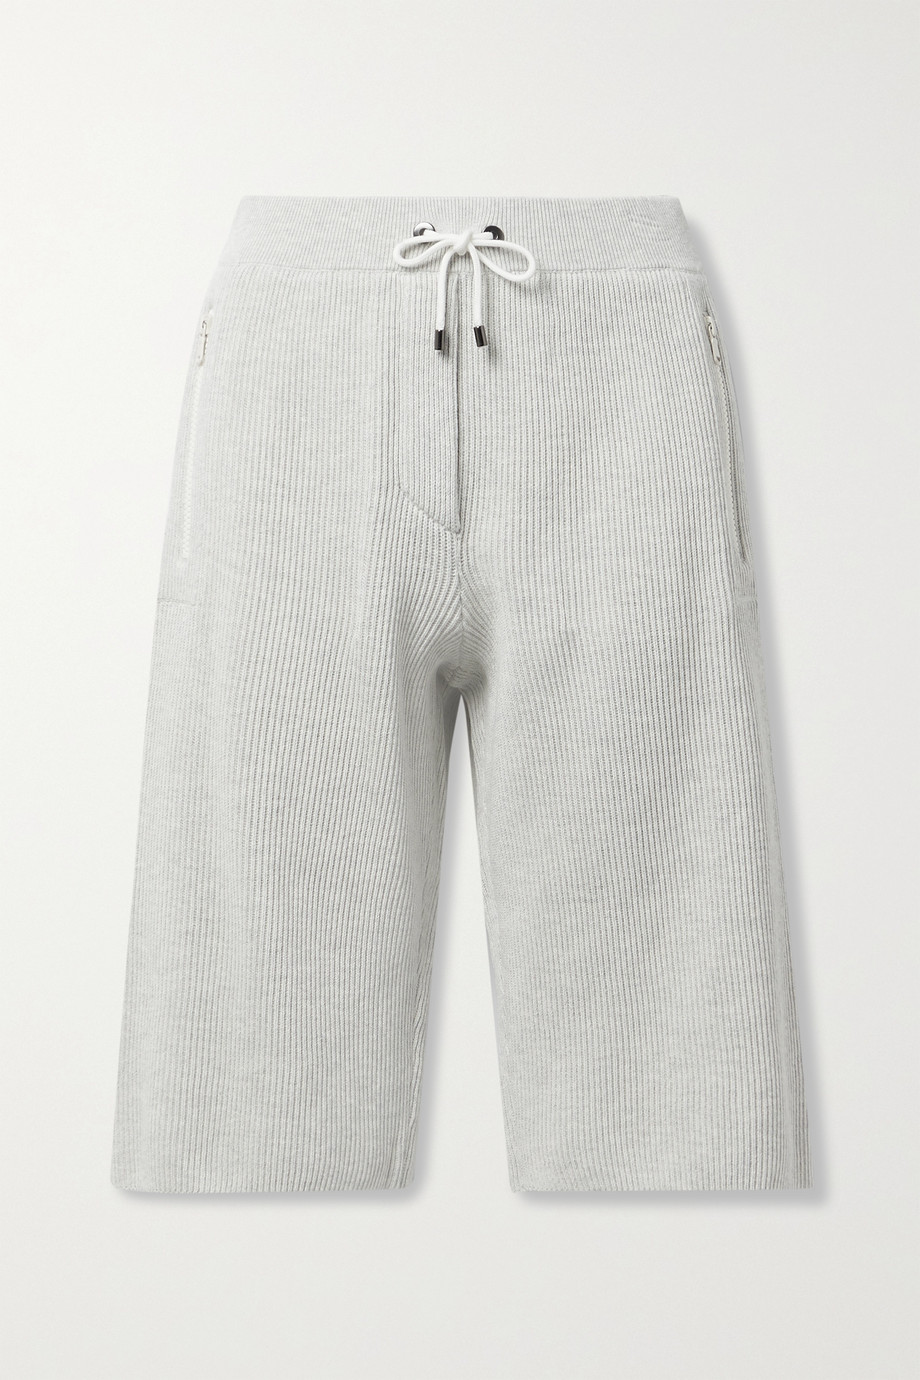 BRUNELLO CUCINELLI Ribbed cotton shorts